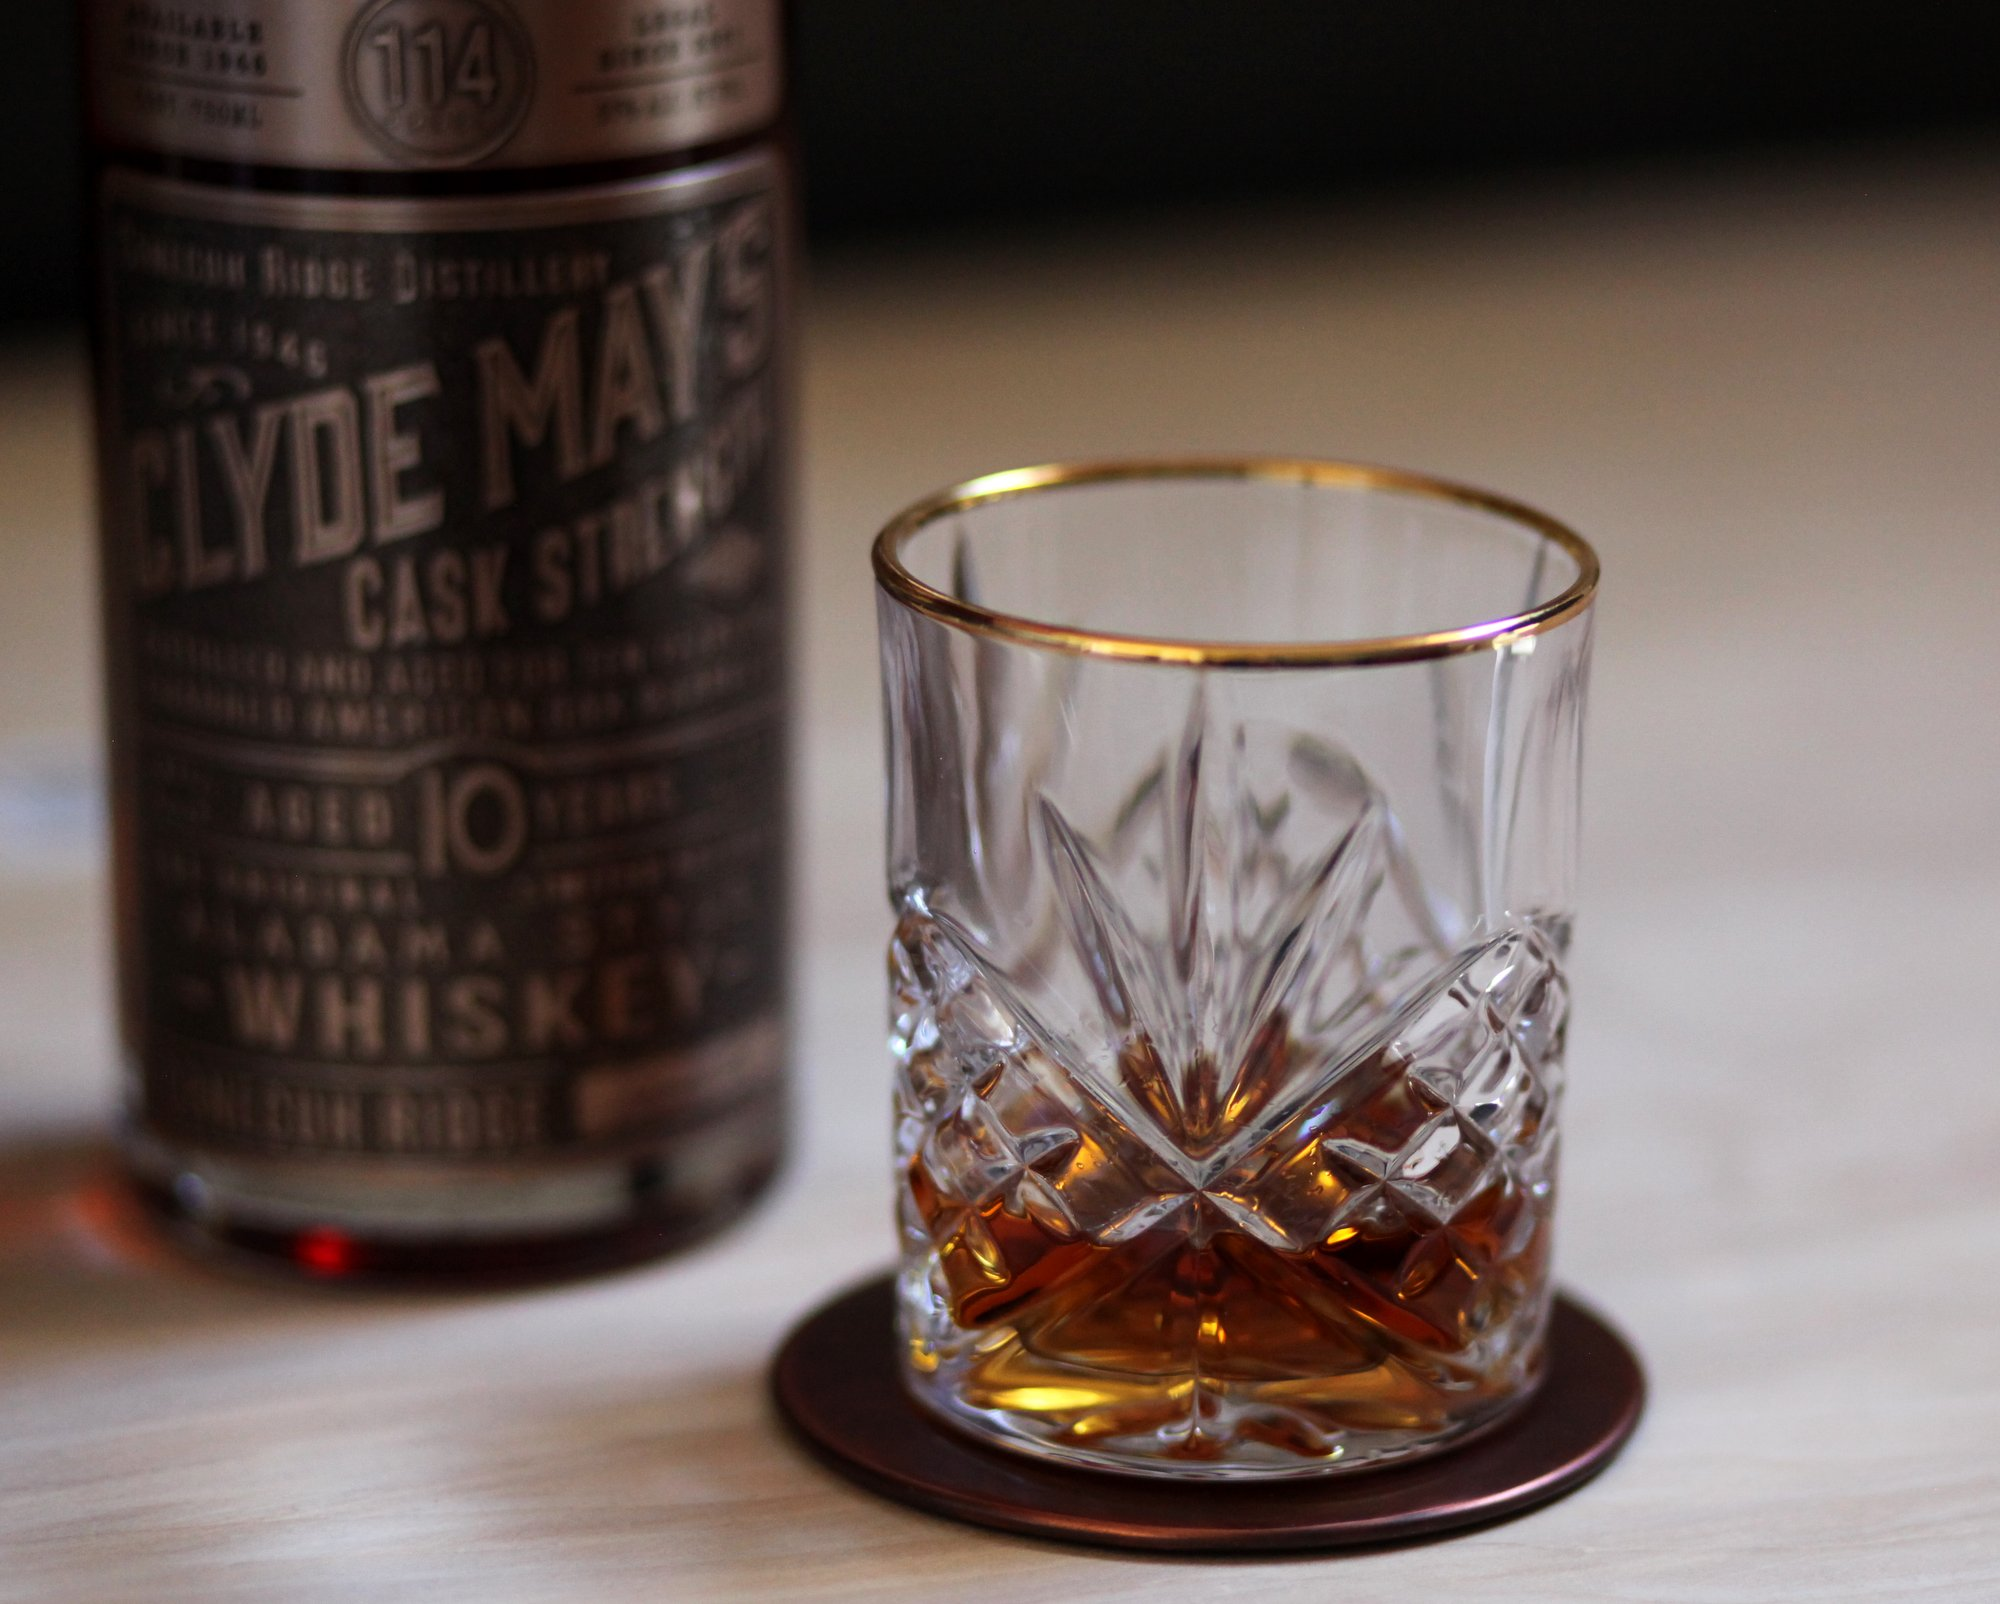 Clyde May's Cask Strength 10 Year Whiskey in Glass